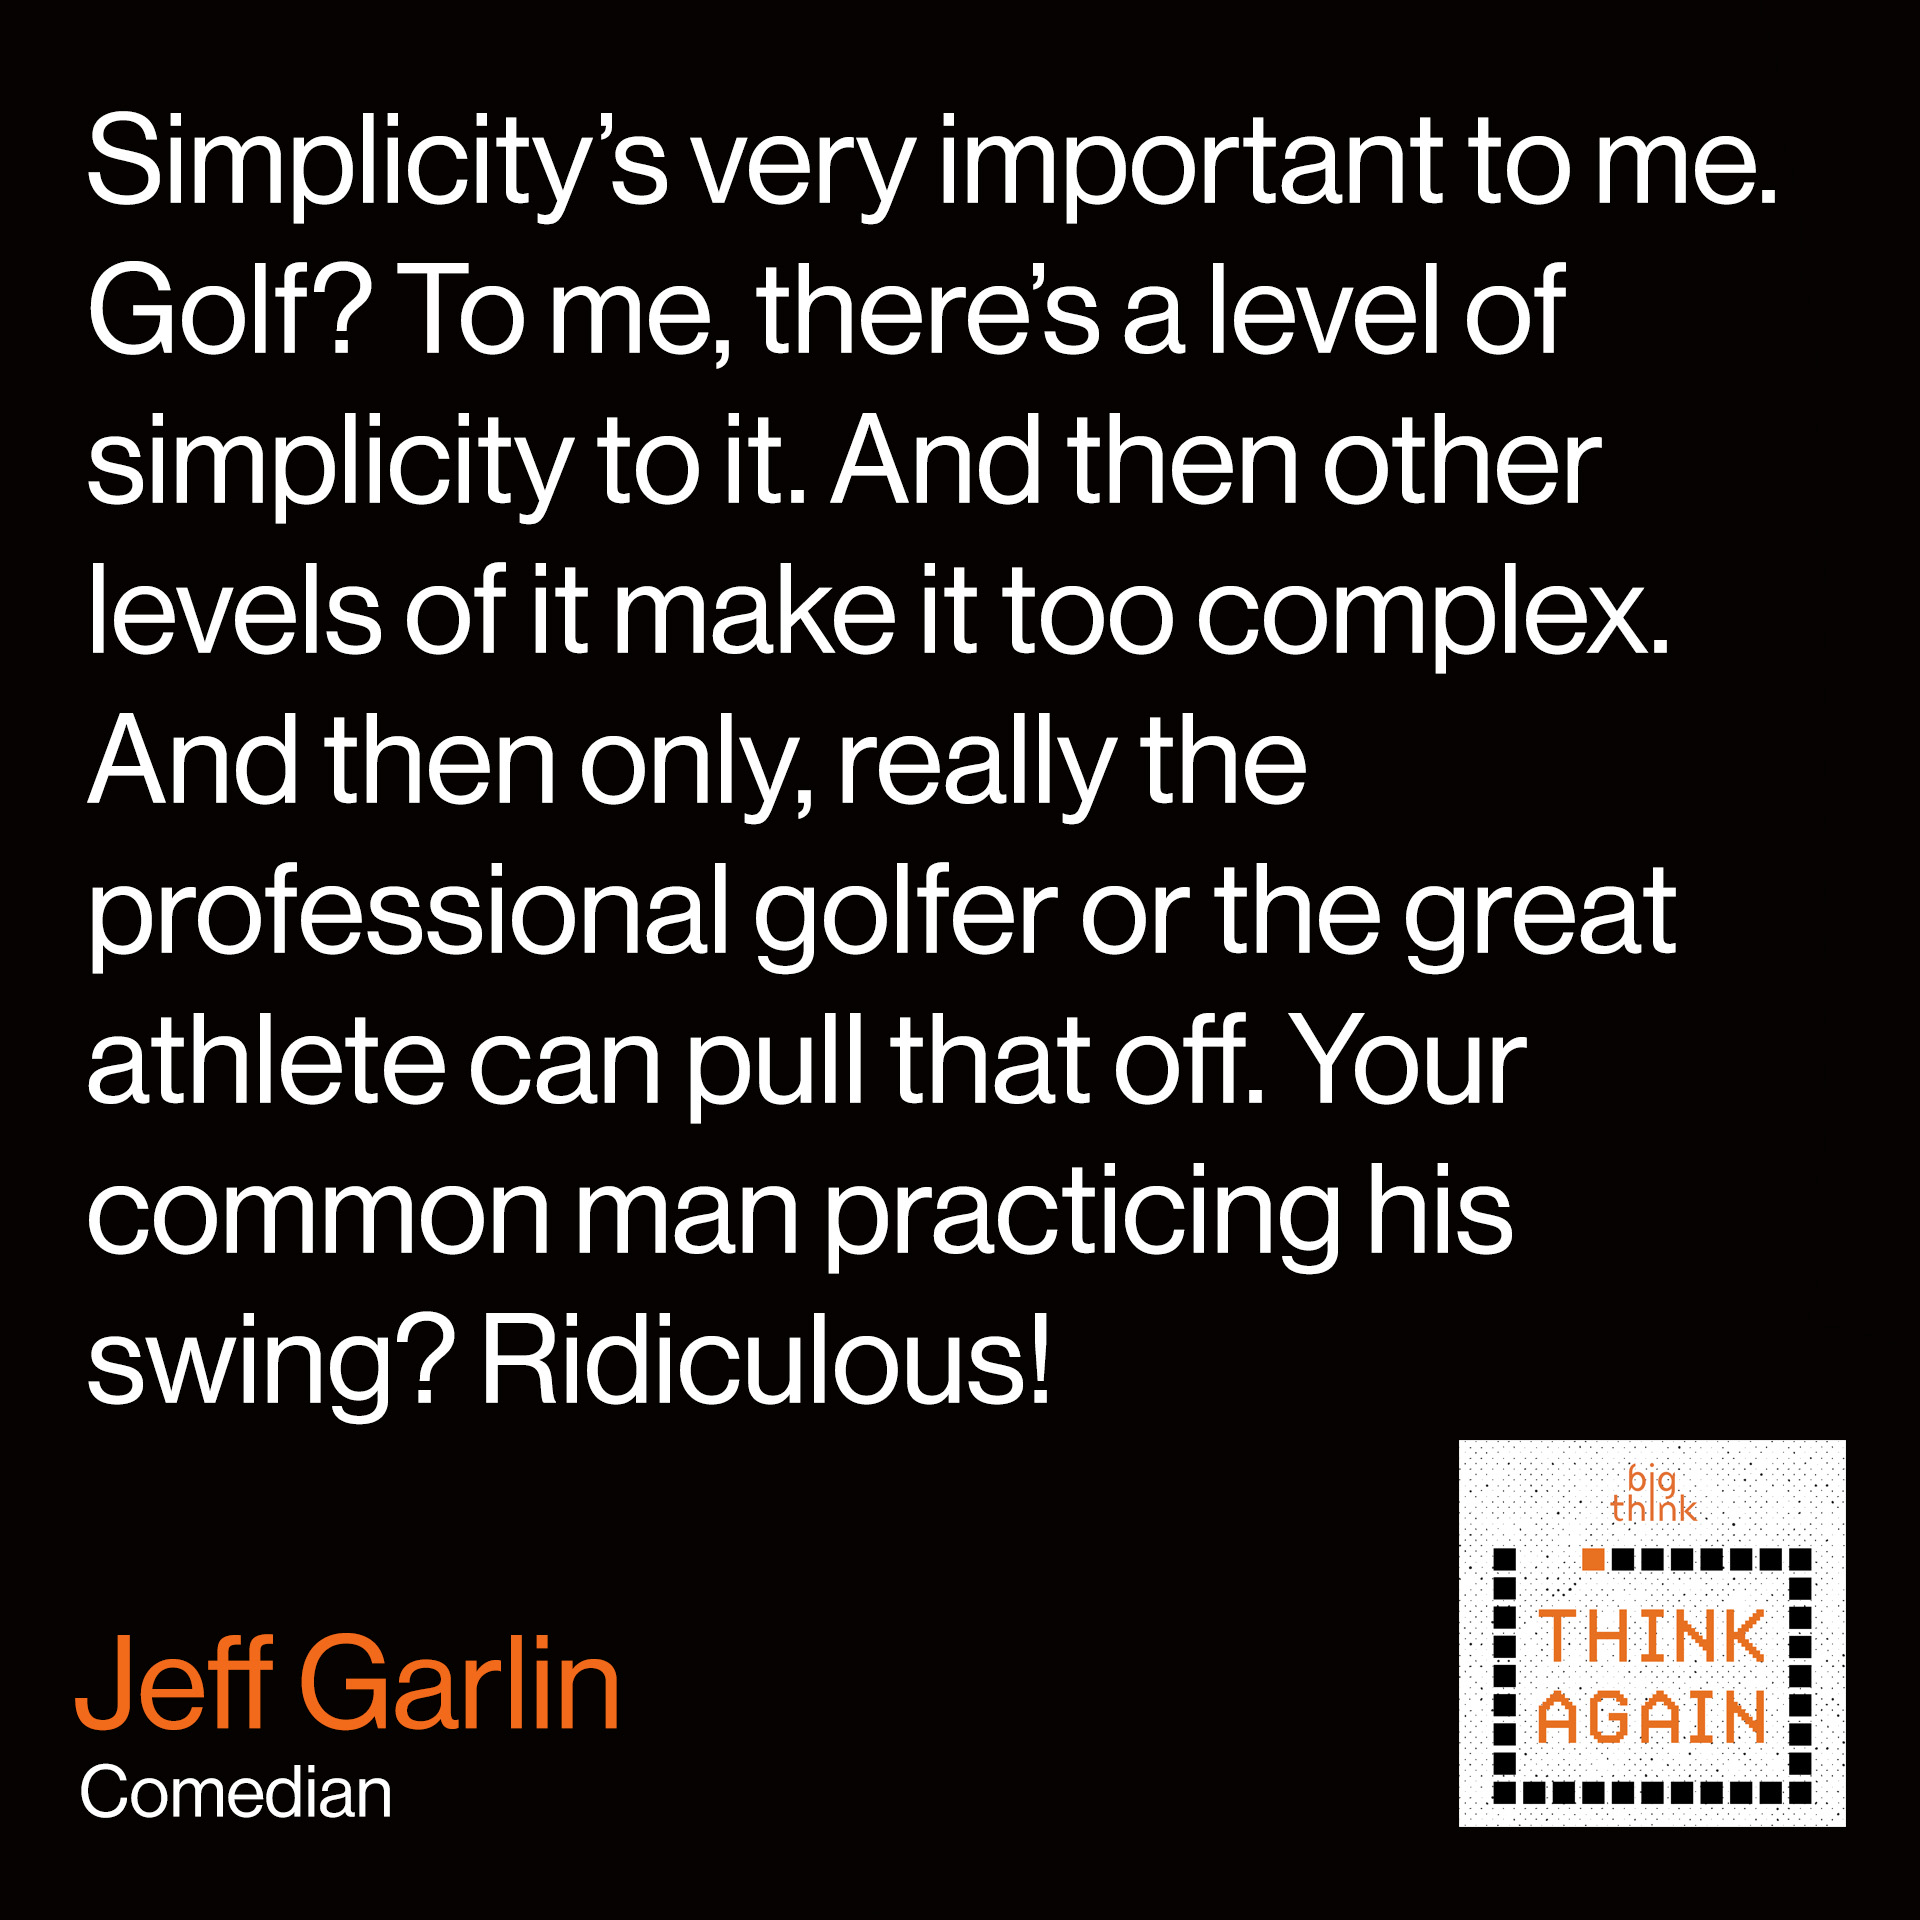 Jeff Garlin Quote:  Simplicity's very important to me.  Golf, to me, there's a level of simplicity to it.  And then other levels of it make it too complex.  And then only, really the professional golfer  or the great athlete can pull that off.  Your common man practicing his swing?  Ridiculous!